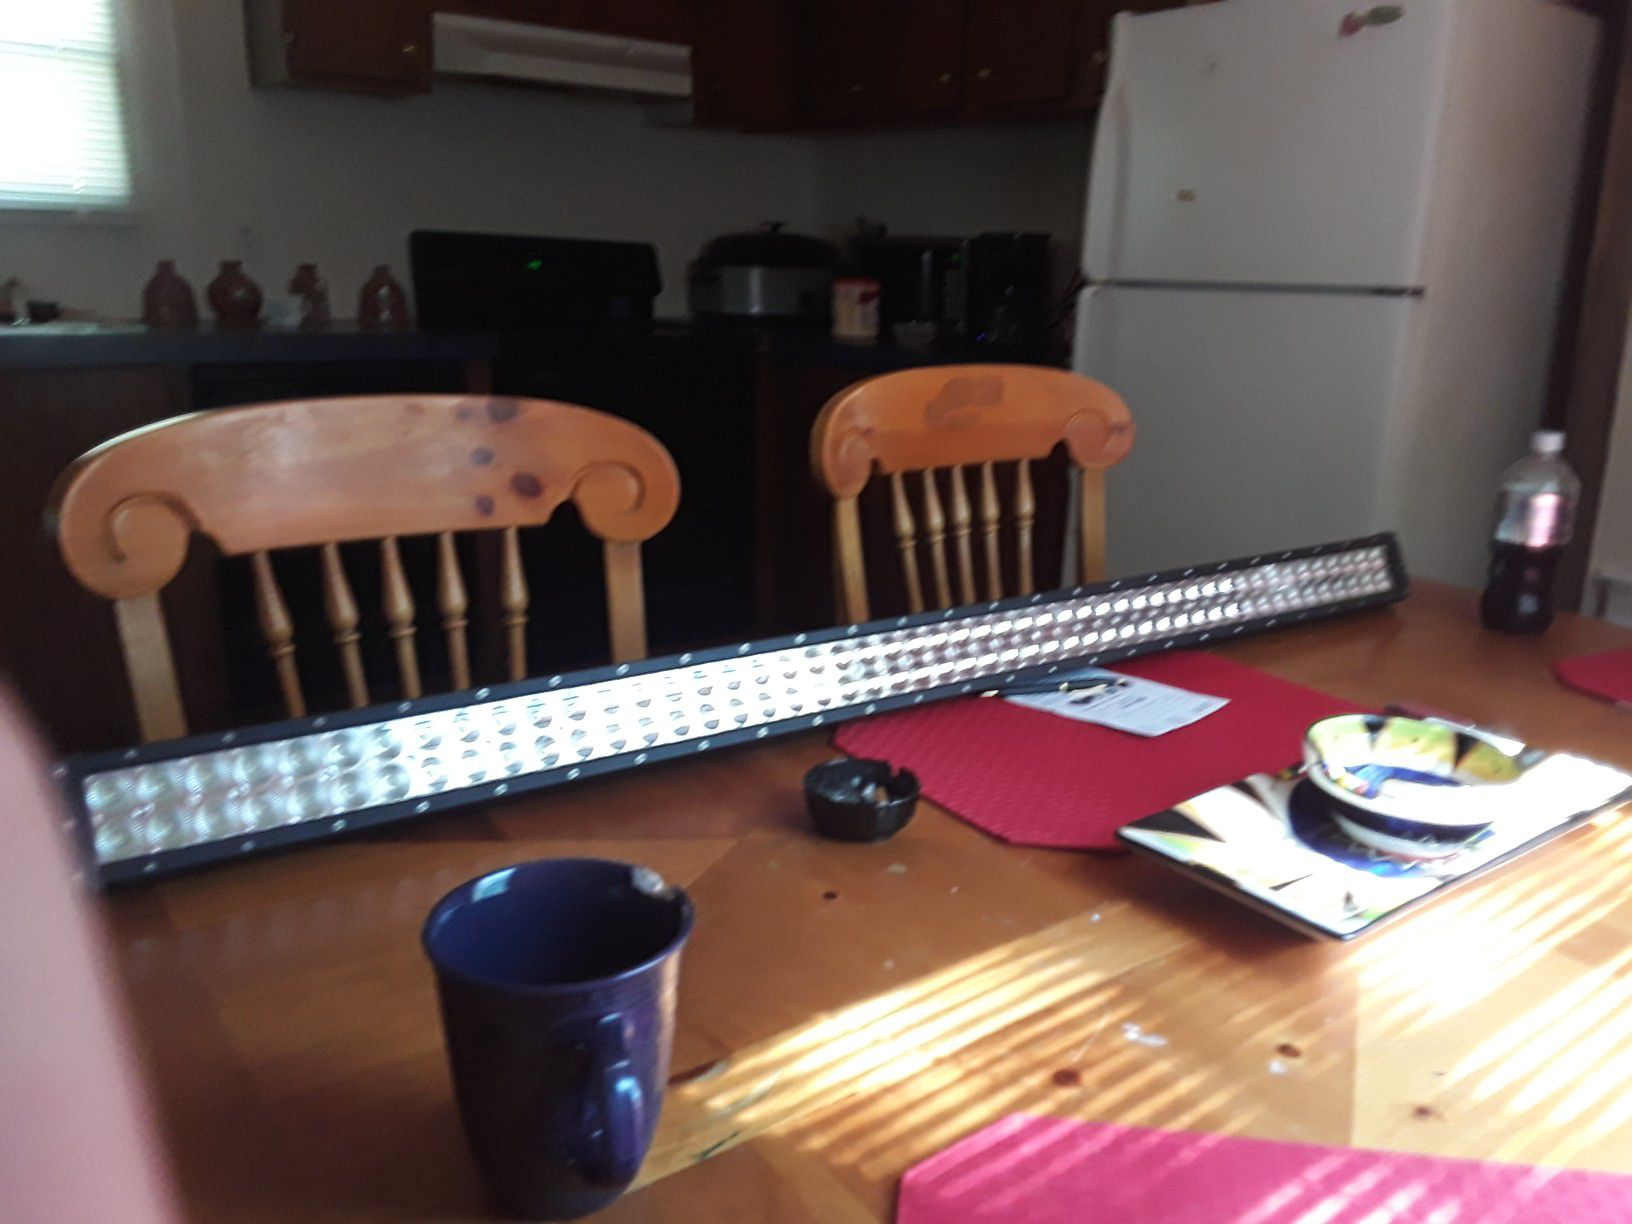 52 inch light bar for truck with bracket